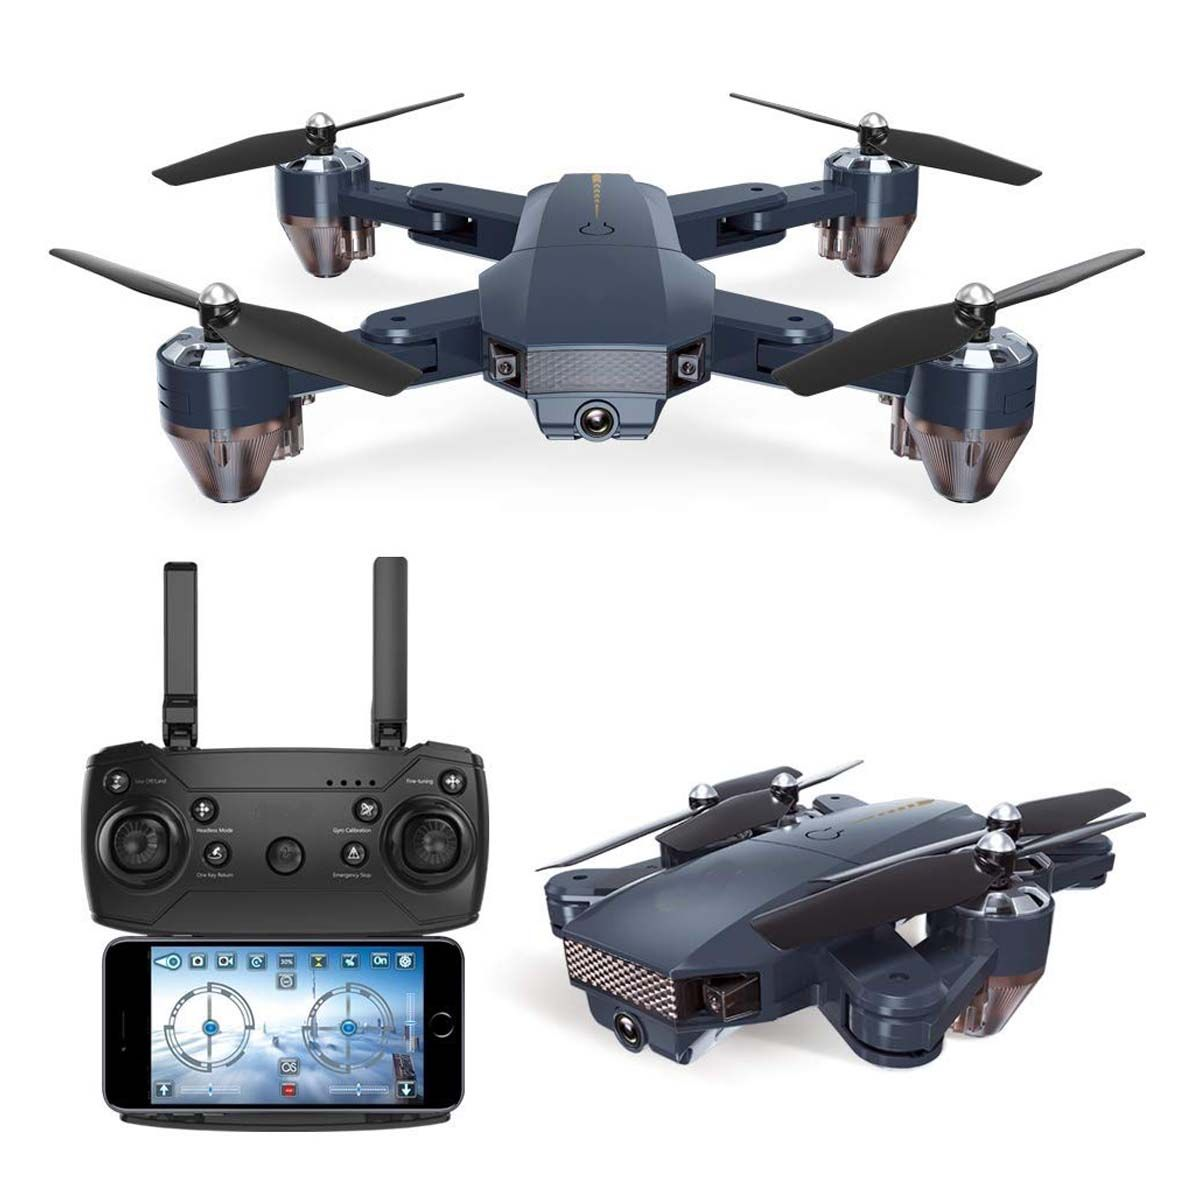 SUPER TOY RC Foldable Drone